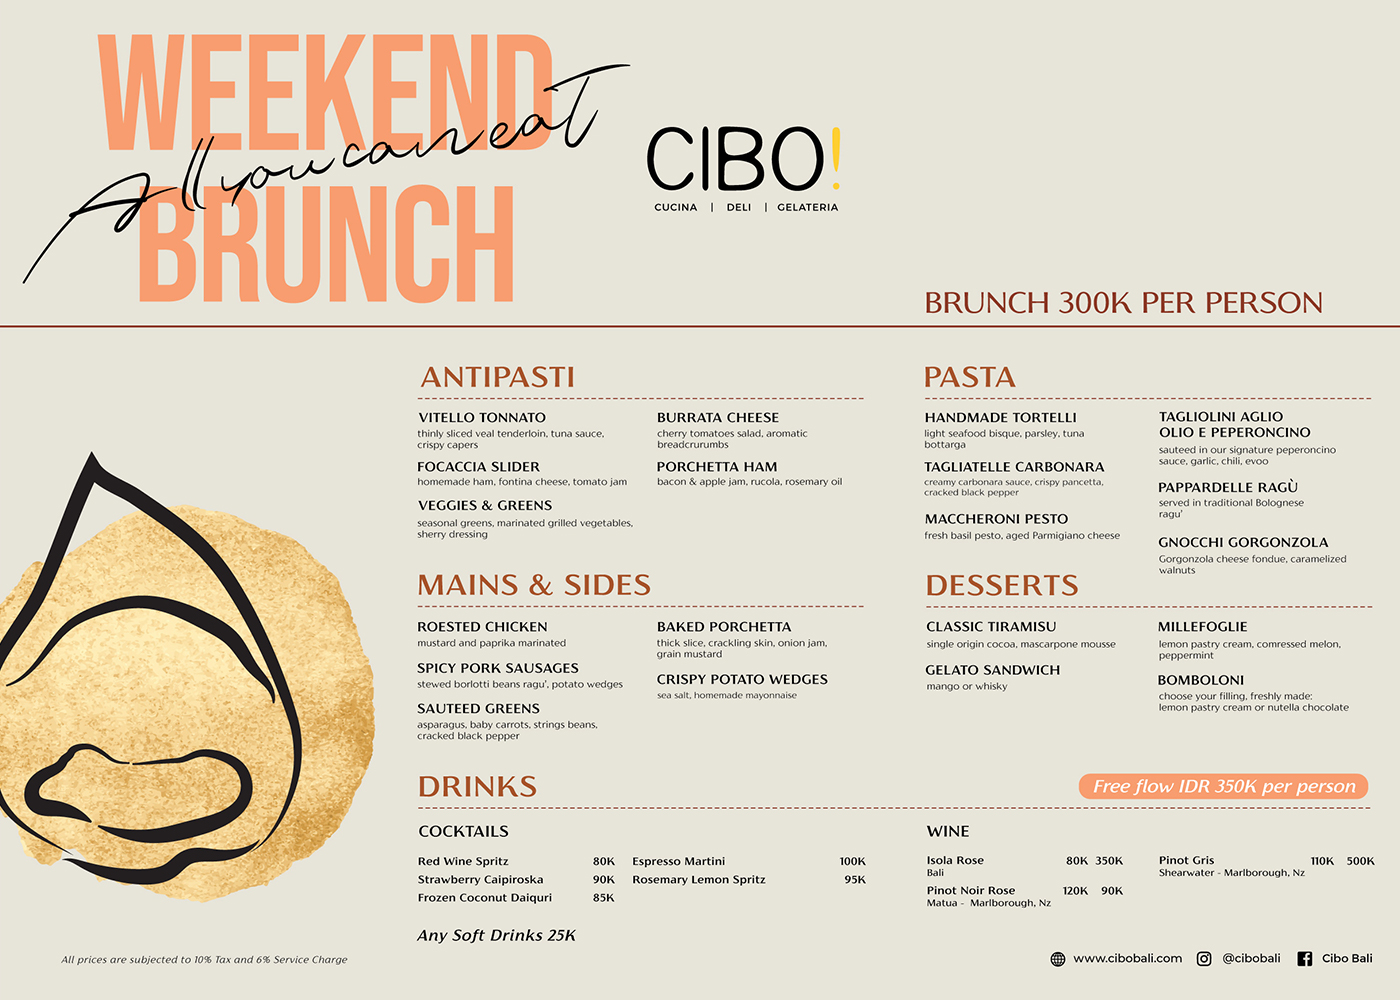 CIBO! ITALIAN WEEKEND BRUNCH